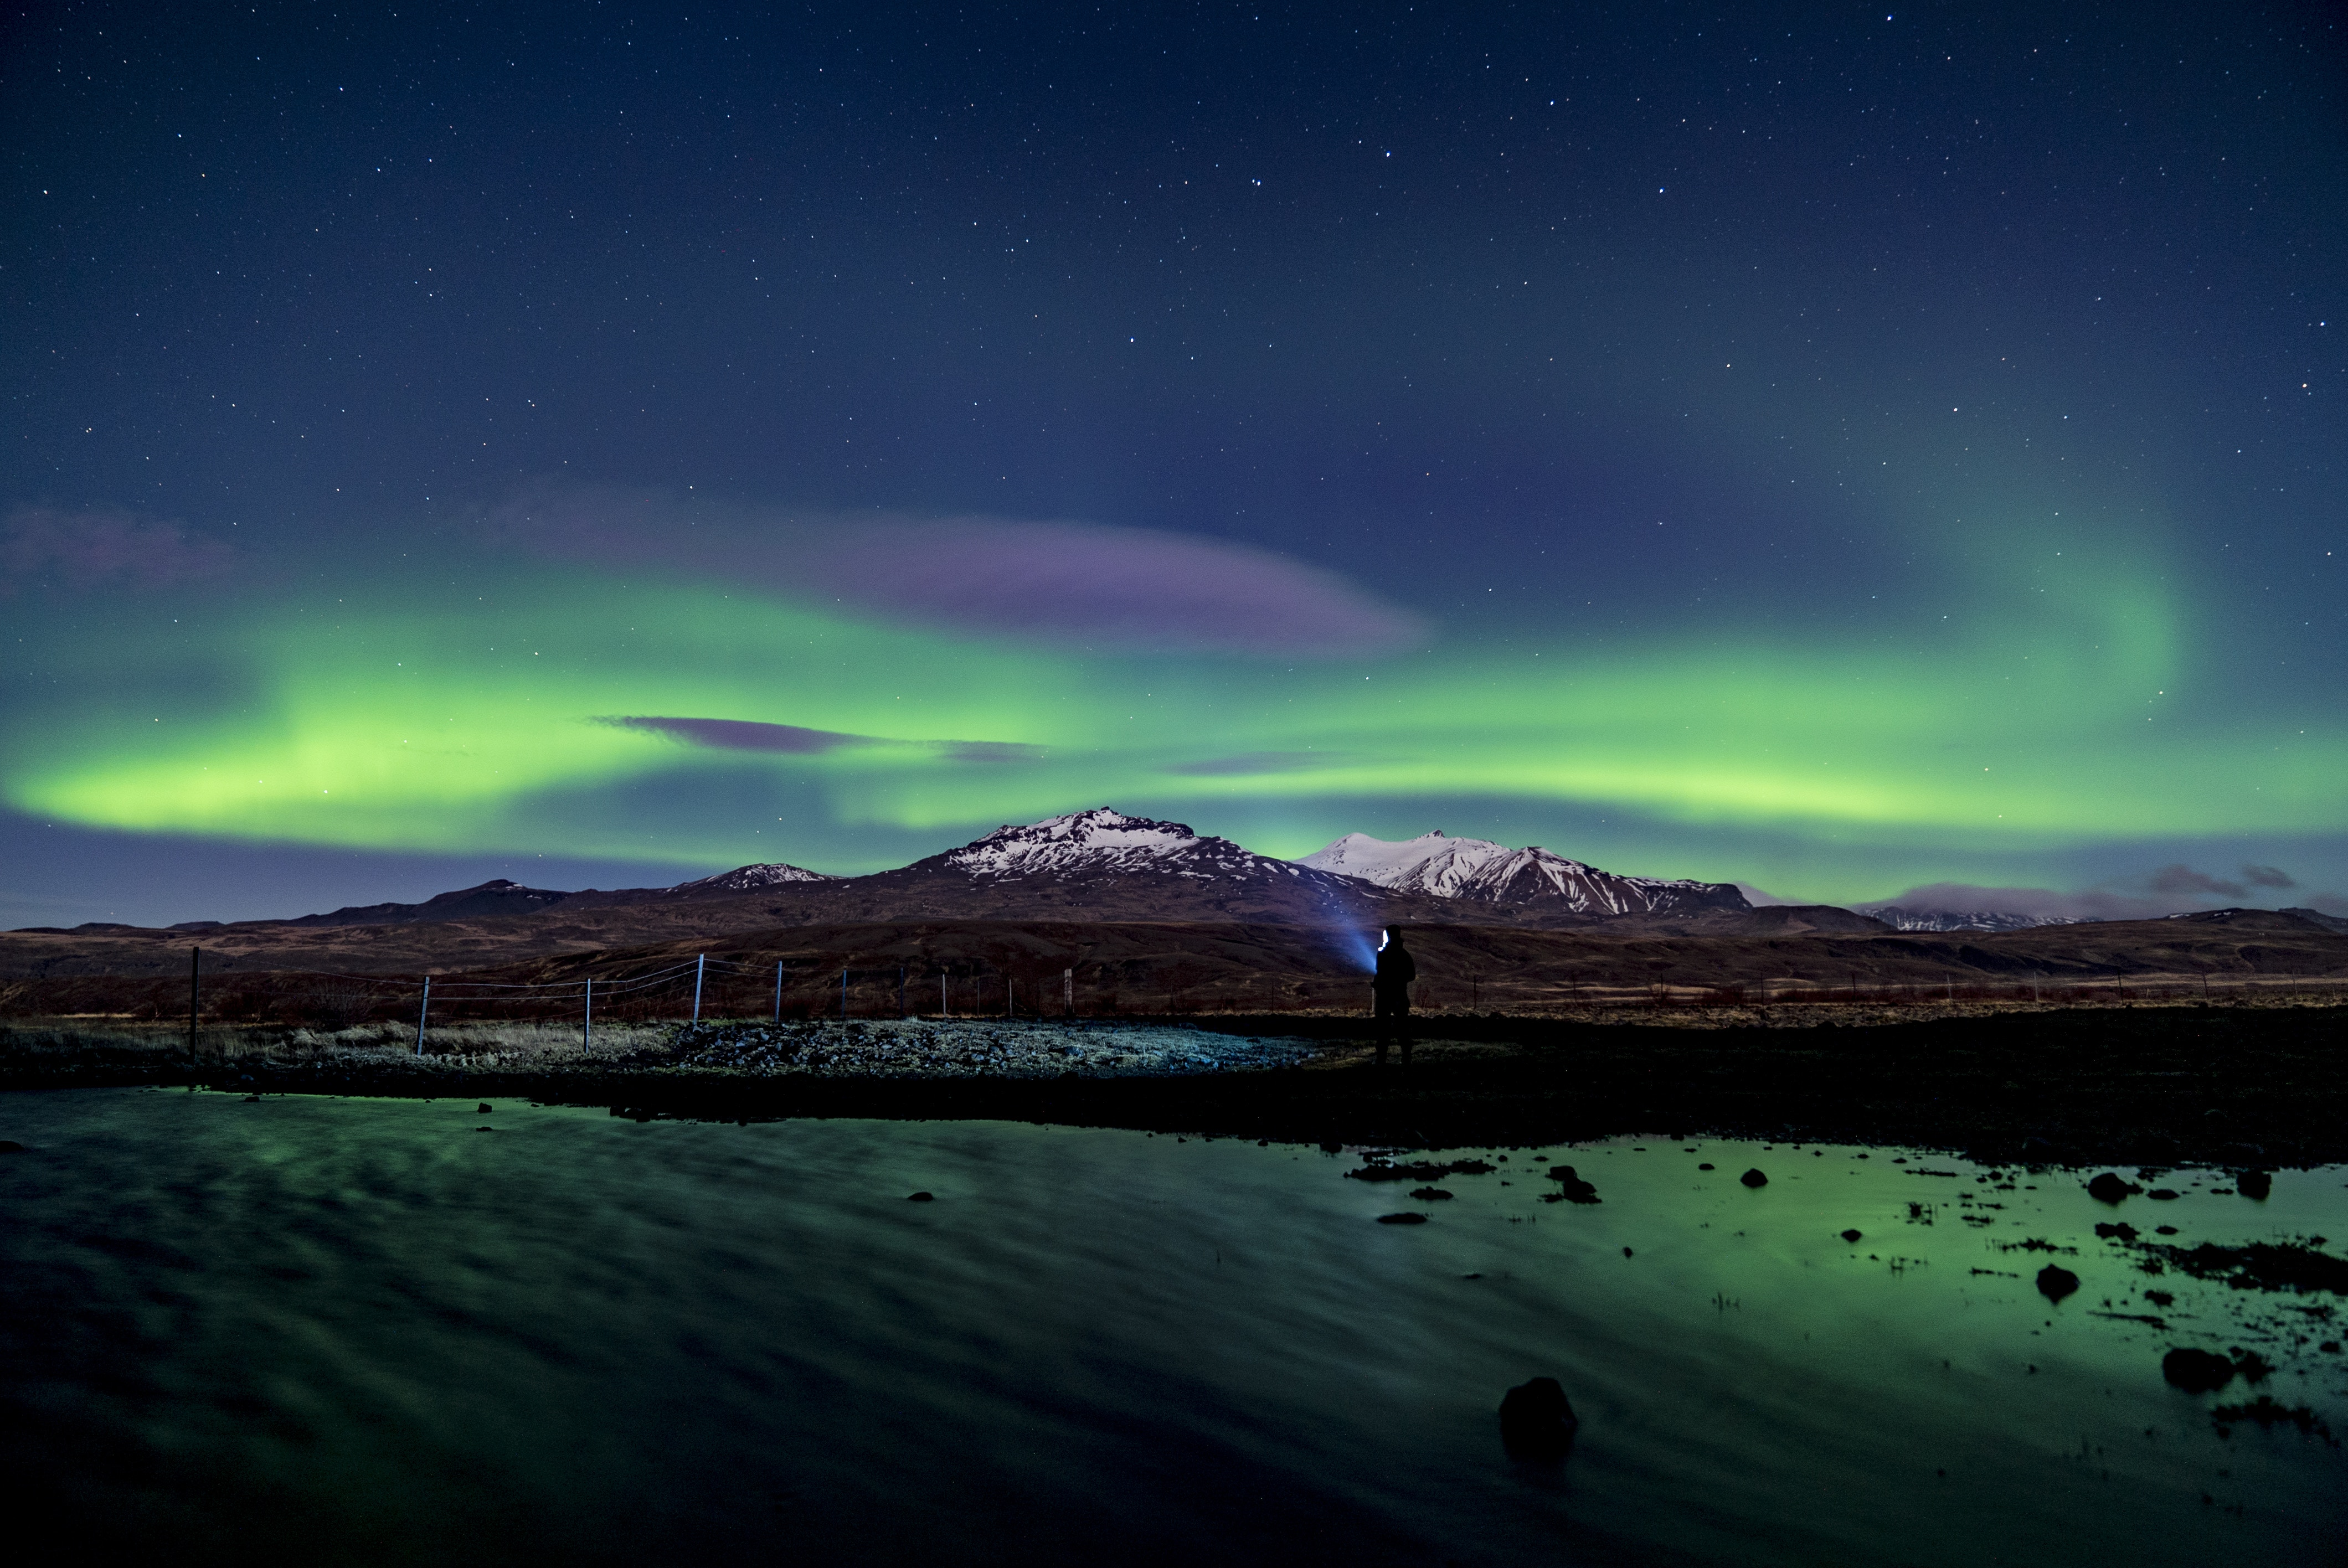 157748 download wallpaper Nature, Northern Lights, Aurora Borealis, Aurora, Silhouette, Snow, Winter, Starry Sky, Night, Mountains screensavers and pictures for free